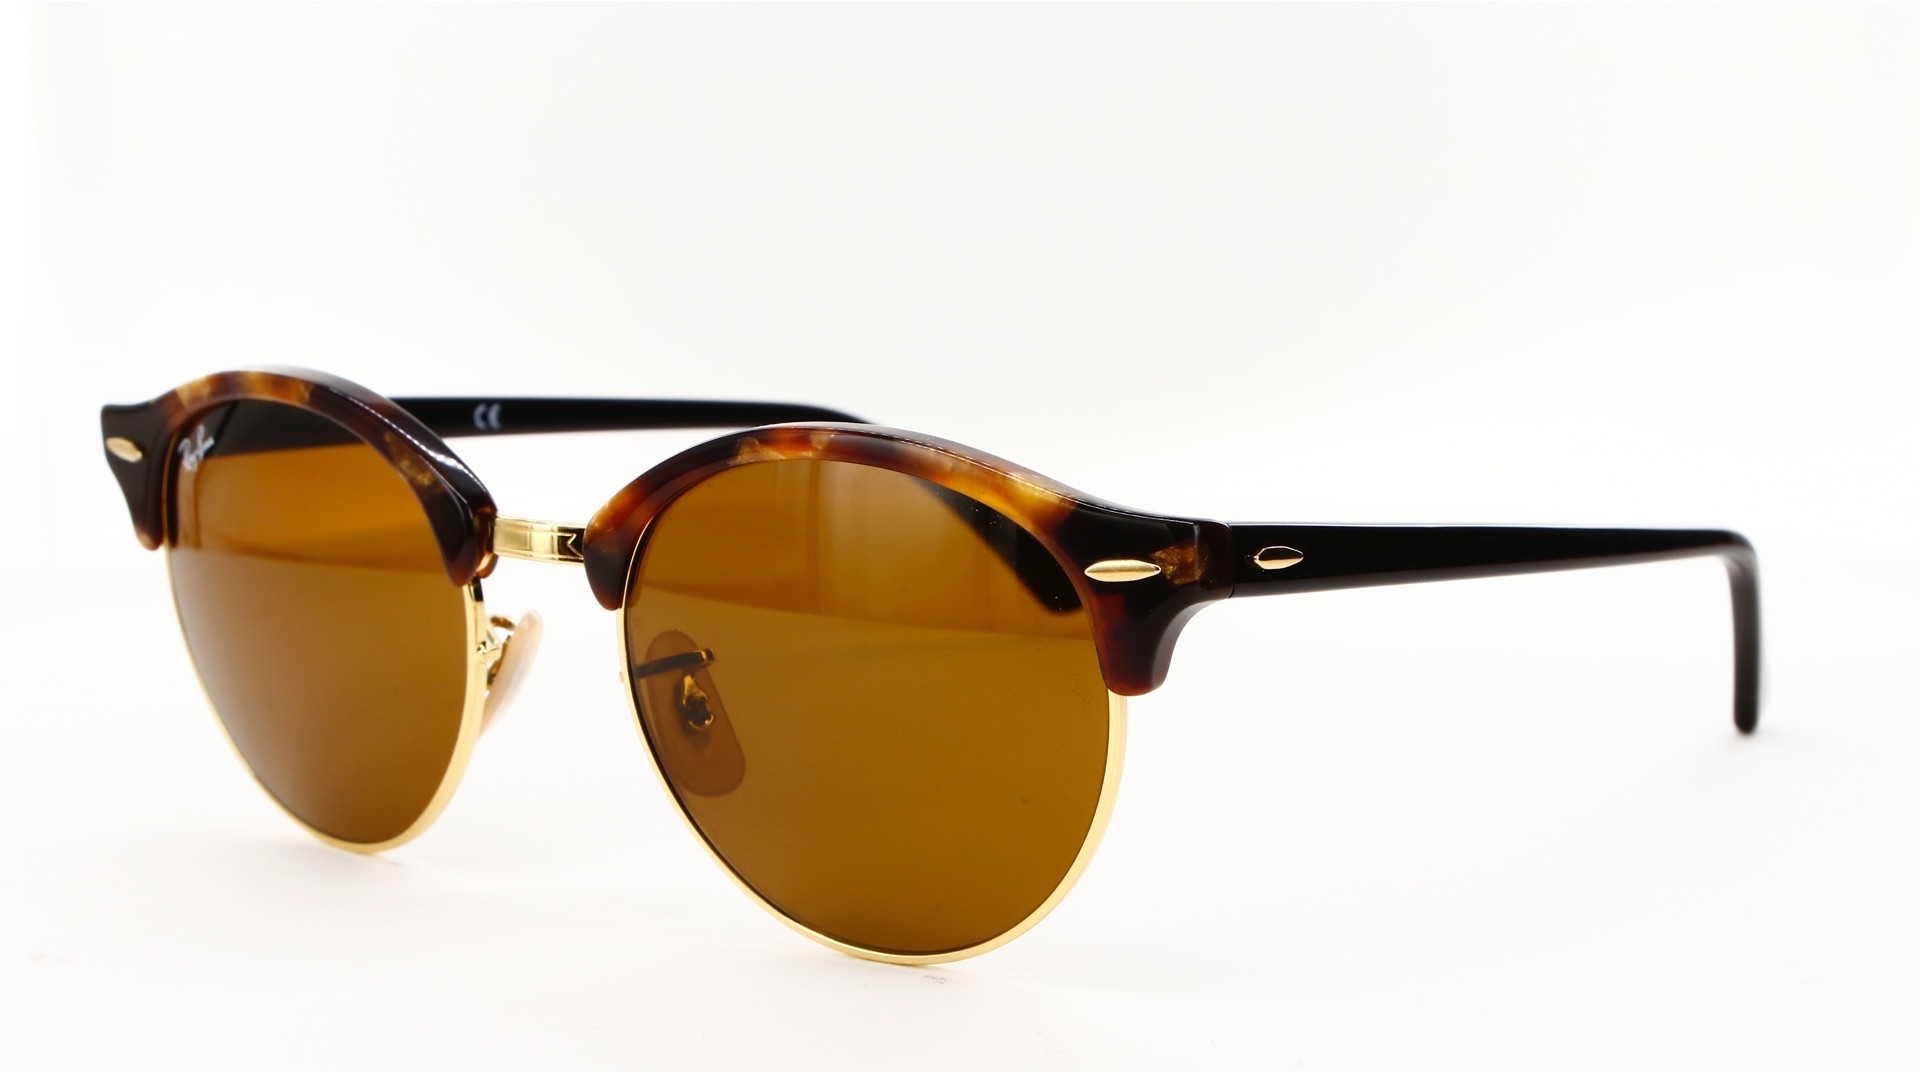 Ray-Ban - ref: 75393